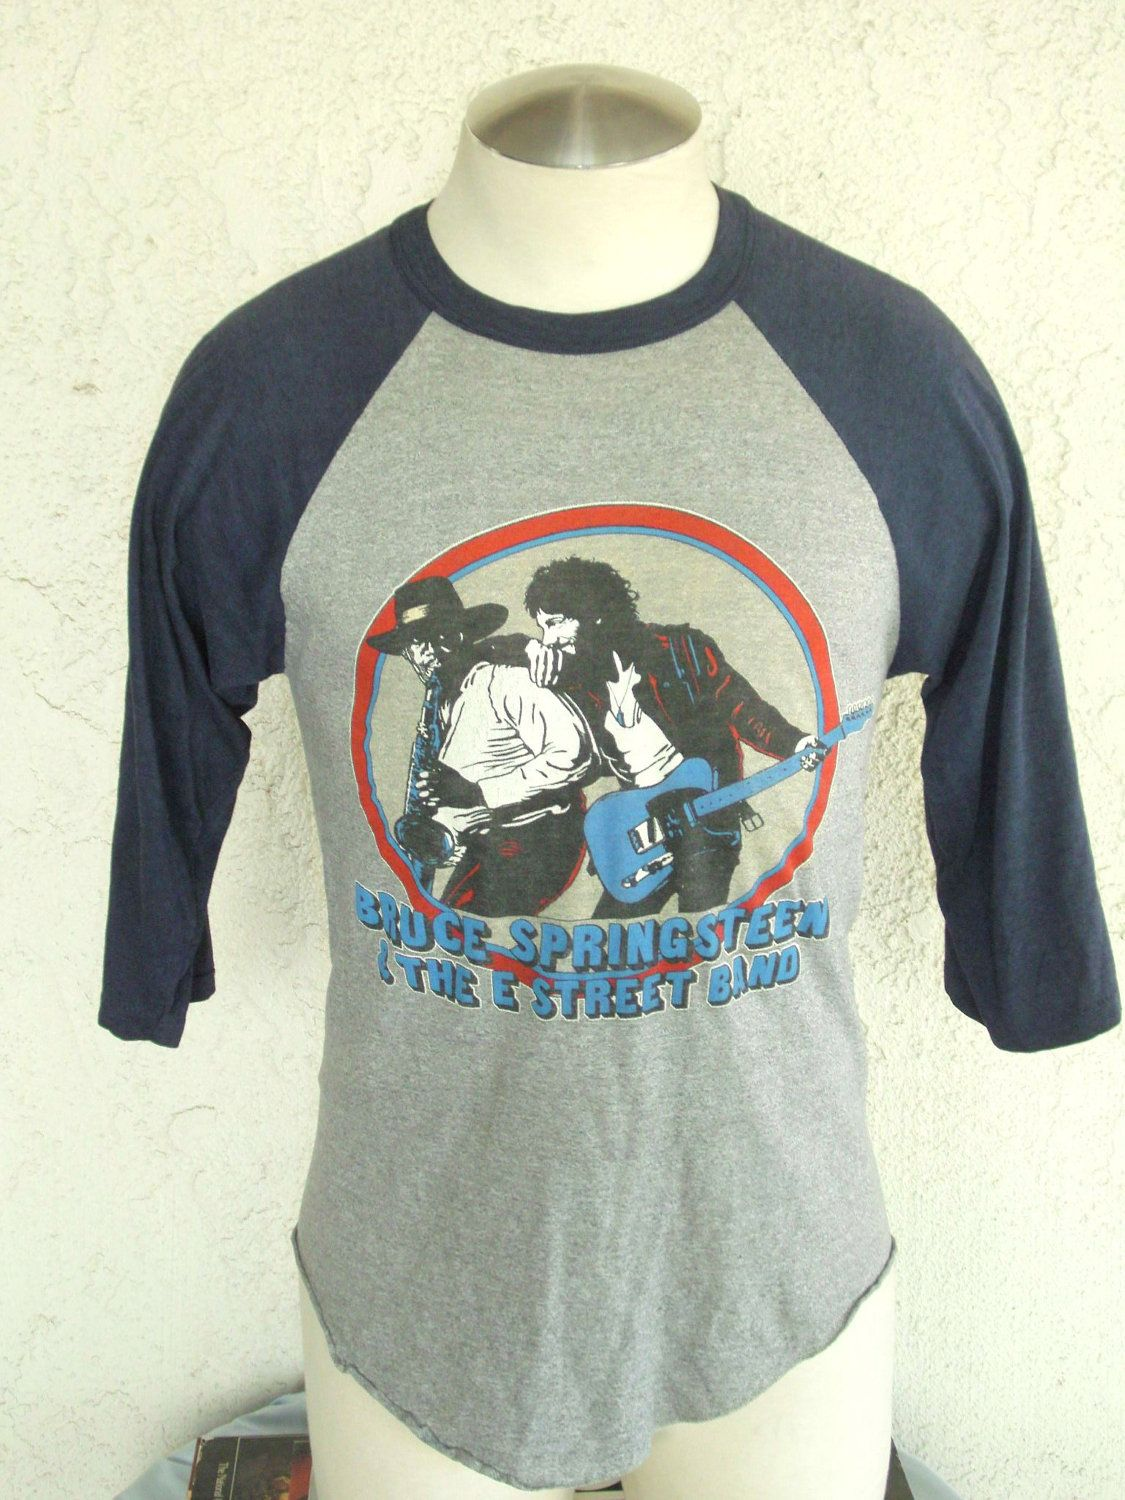 Vintage bruce springsteen concert world tour t shirt 1980 81 sz large 124 99 via etsy had that tshirt